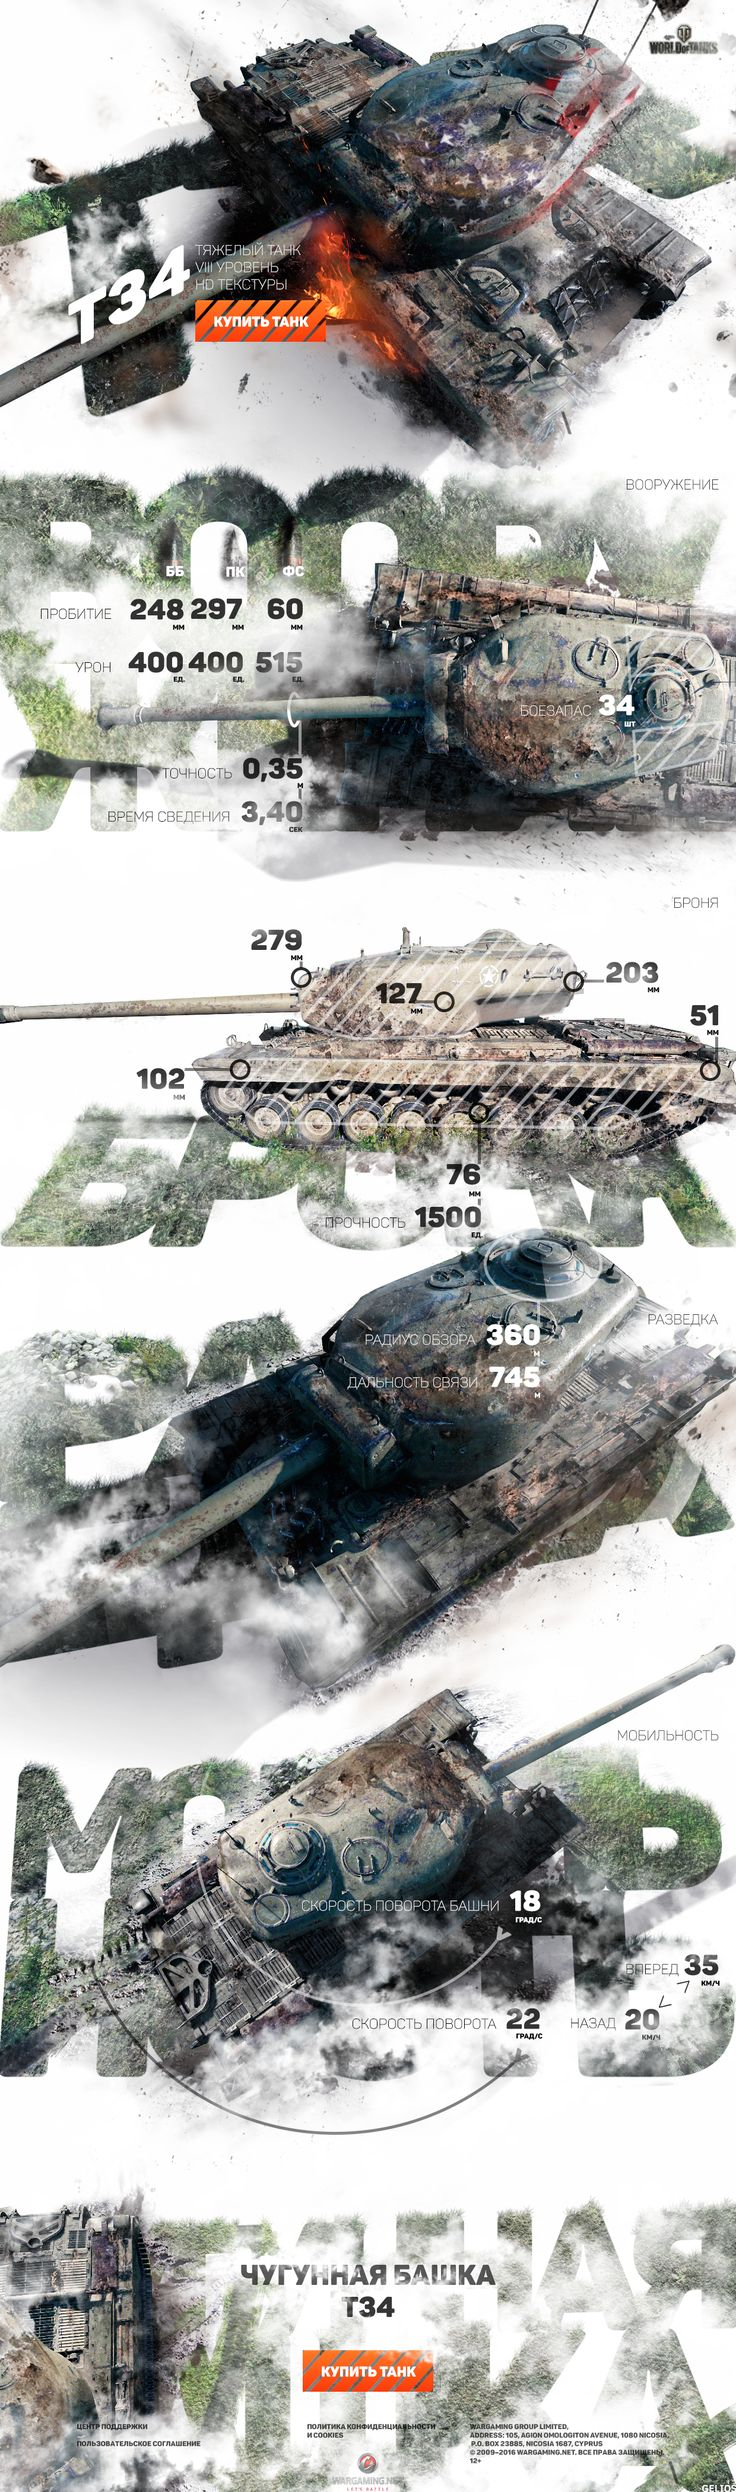 American tank T-34 site layout photoshop collage landing pages game